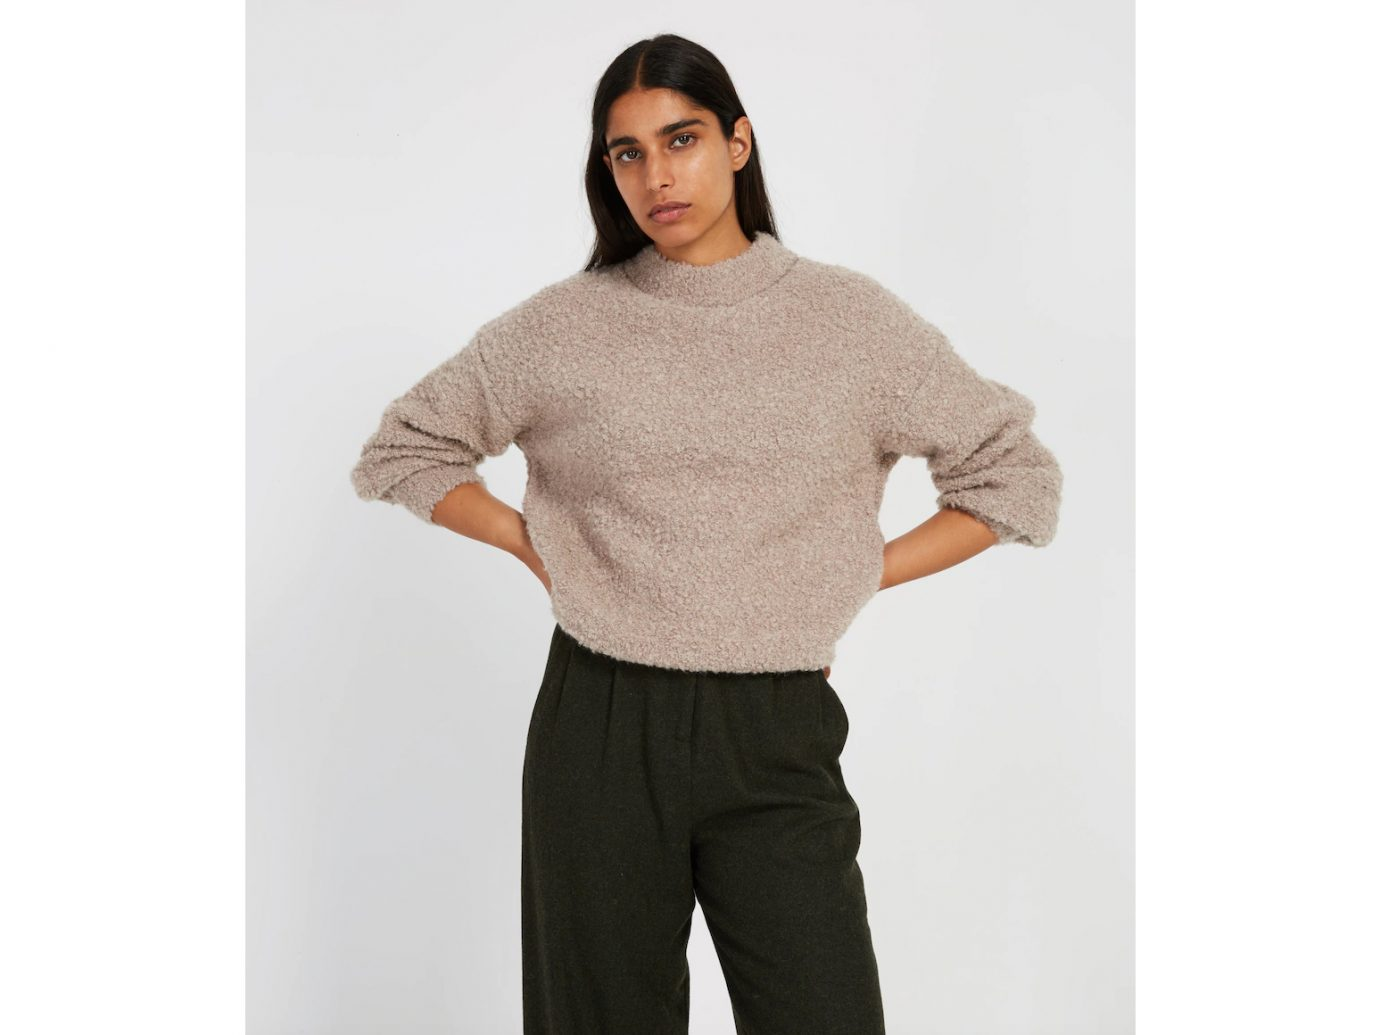 Sweater: Frank and Oak Fuzzy Bouclé Crewneck